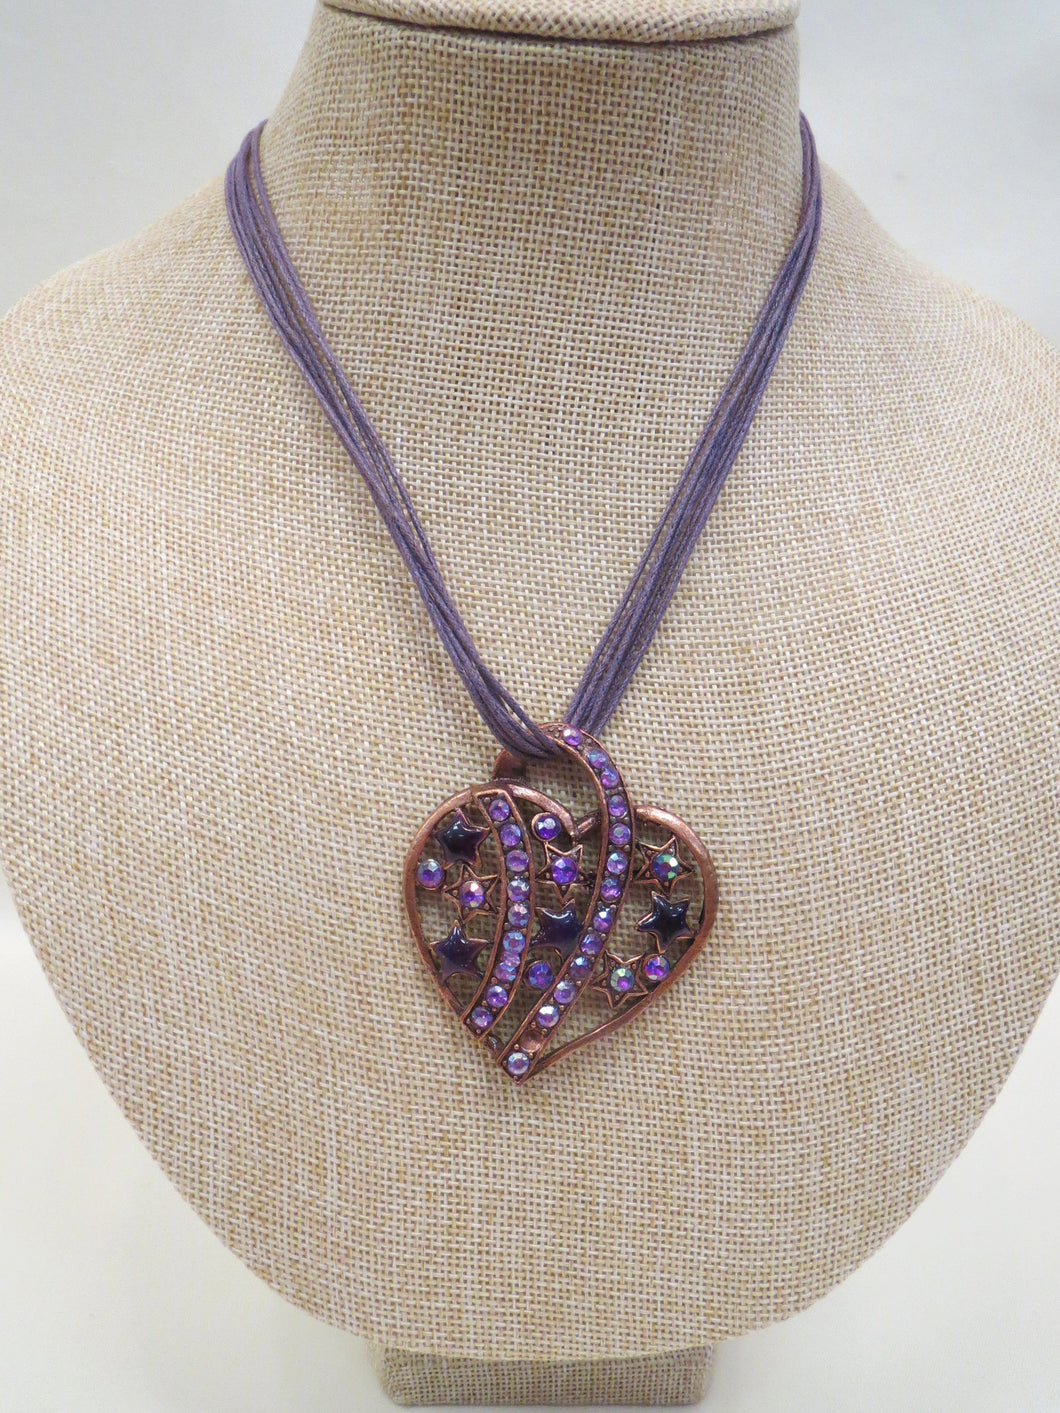 ADO Purple Heart on Cord Necklace | All Dec'd Out